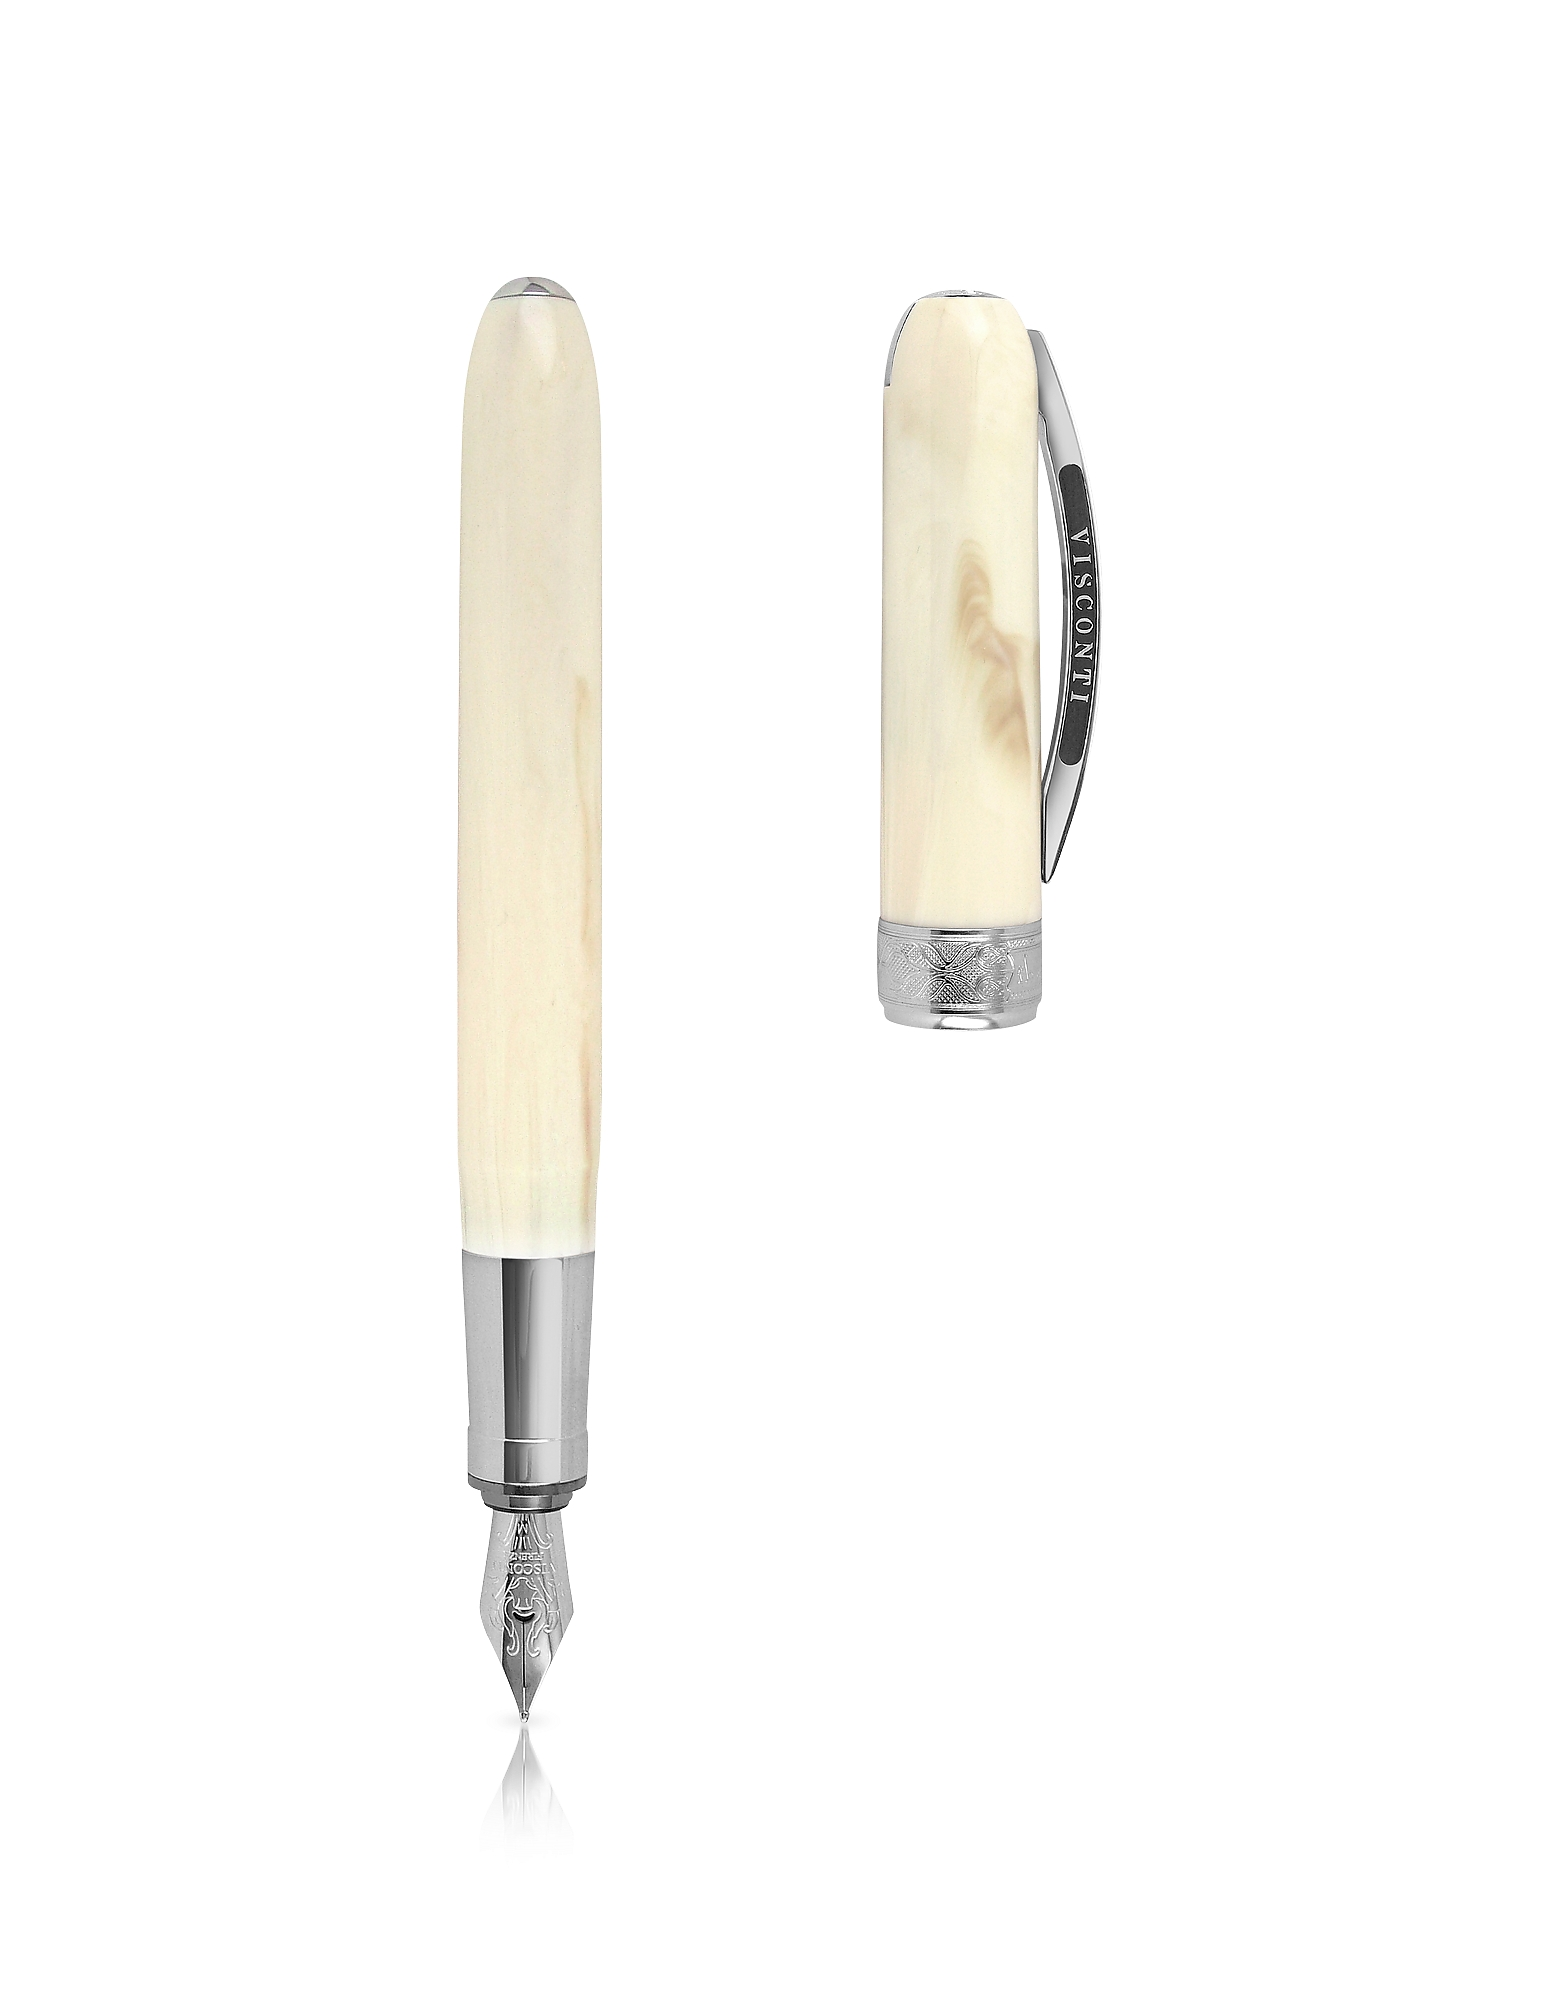 Visconti Writing Instruments, Rembrandt - Resin Fountain Pen